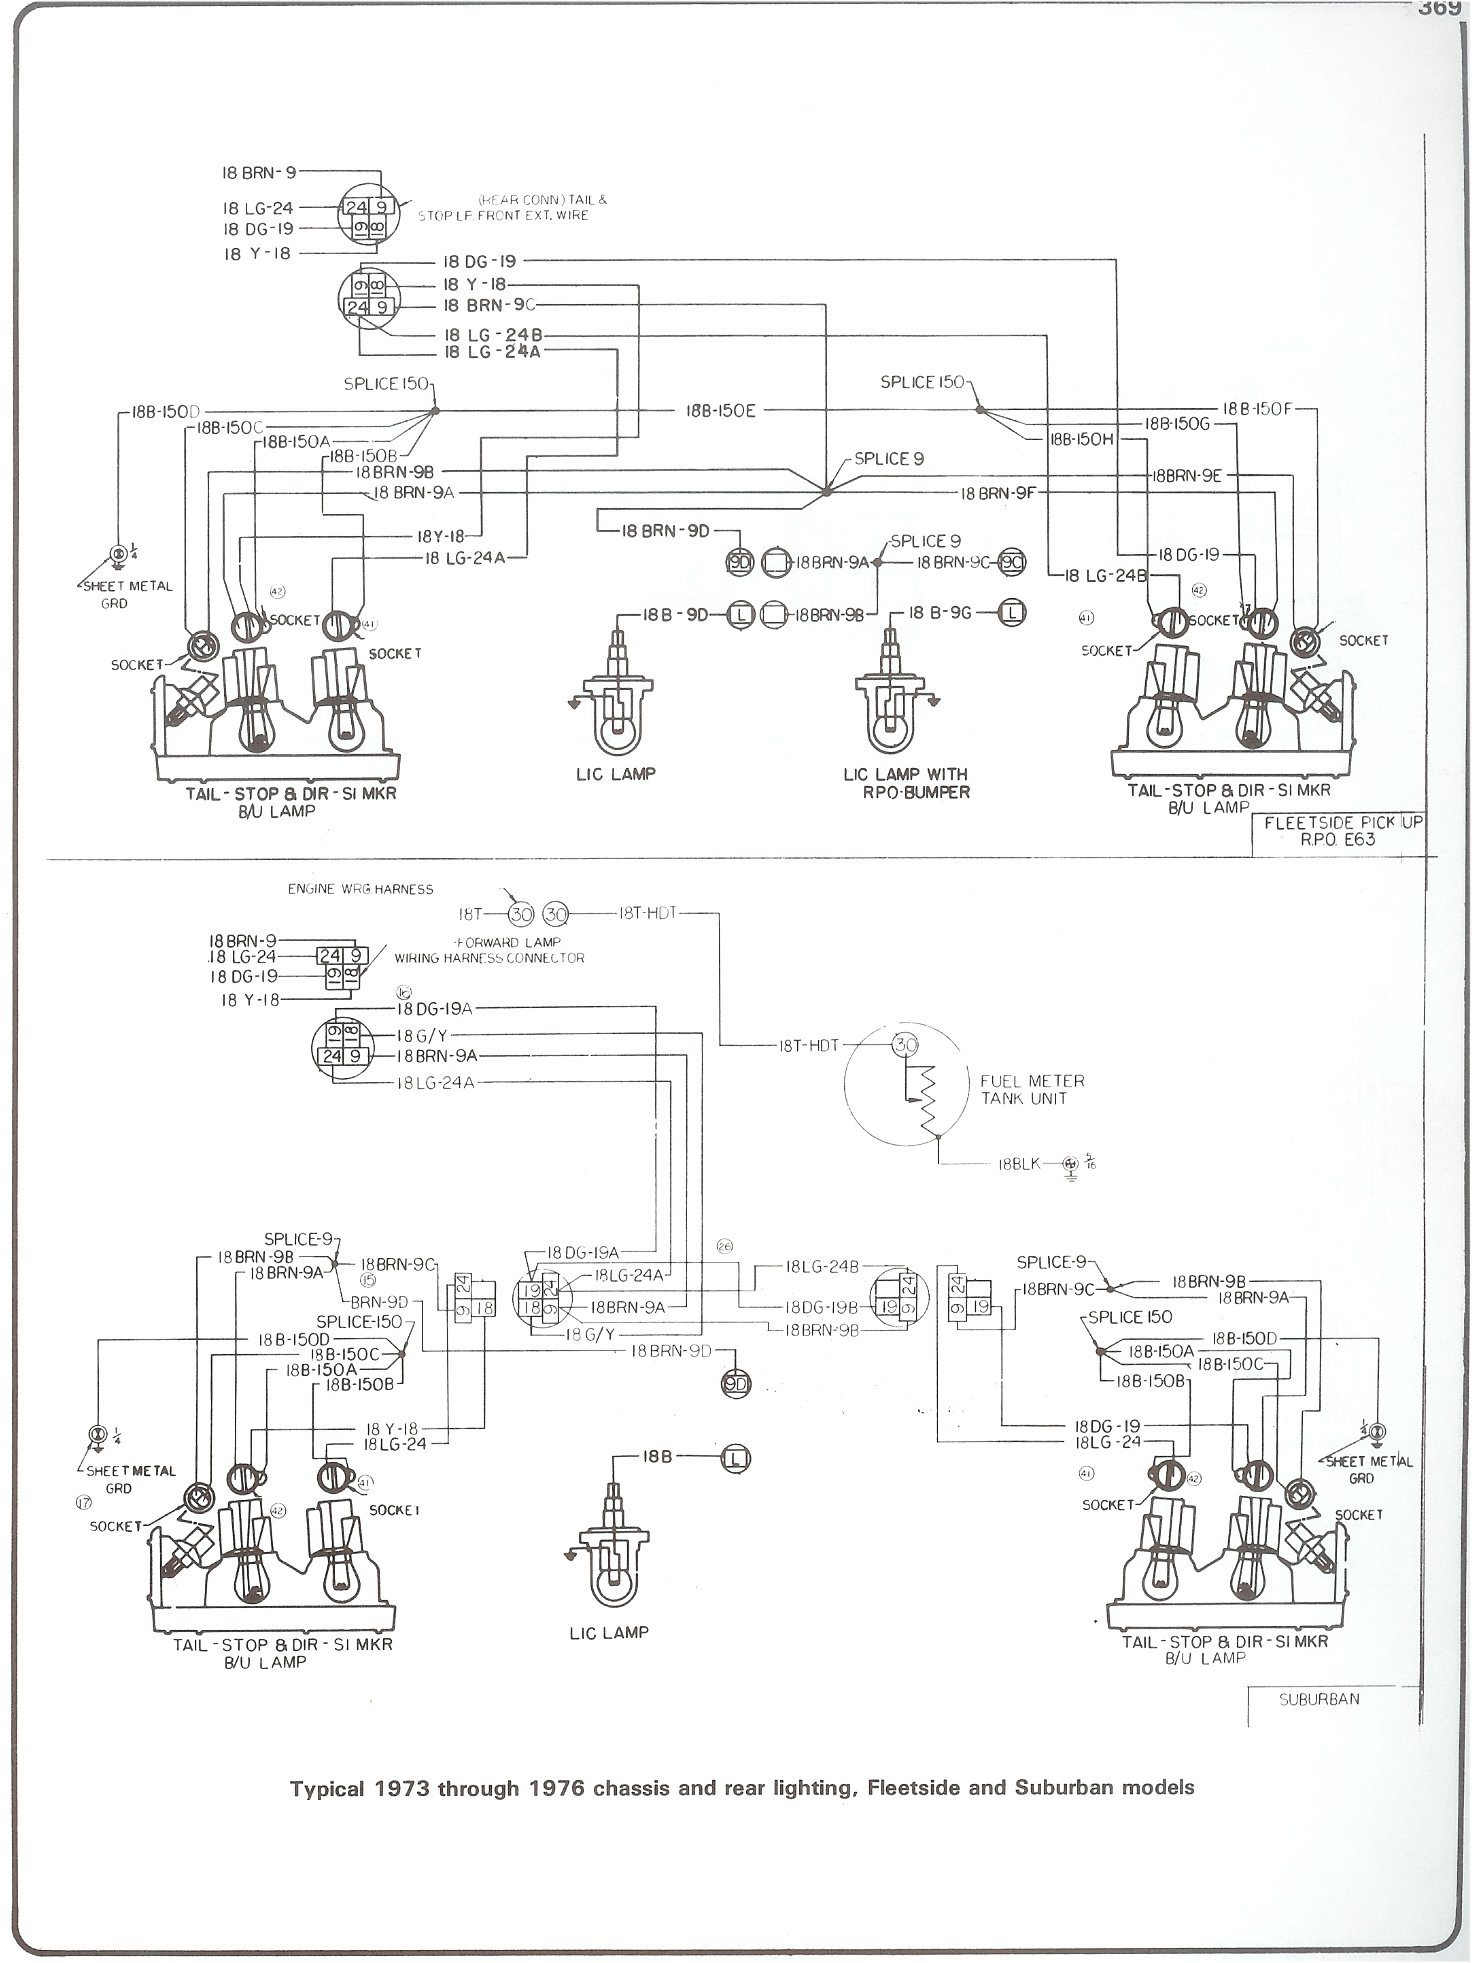 Complete 73-87 Wiring Diagrams on gmc motorhome wiring diagram, ford motorhome wiring diagram, dodge motorhome wiring diagram, monaco motorhome wiring diagram, chevy astro van wiring diagram, fleetwood bounder motorhome wiring diagram,